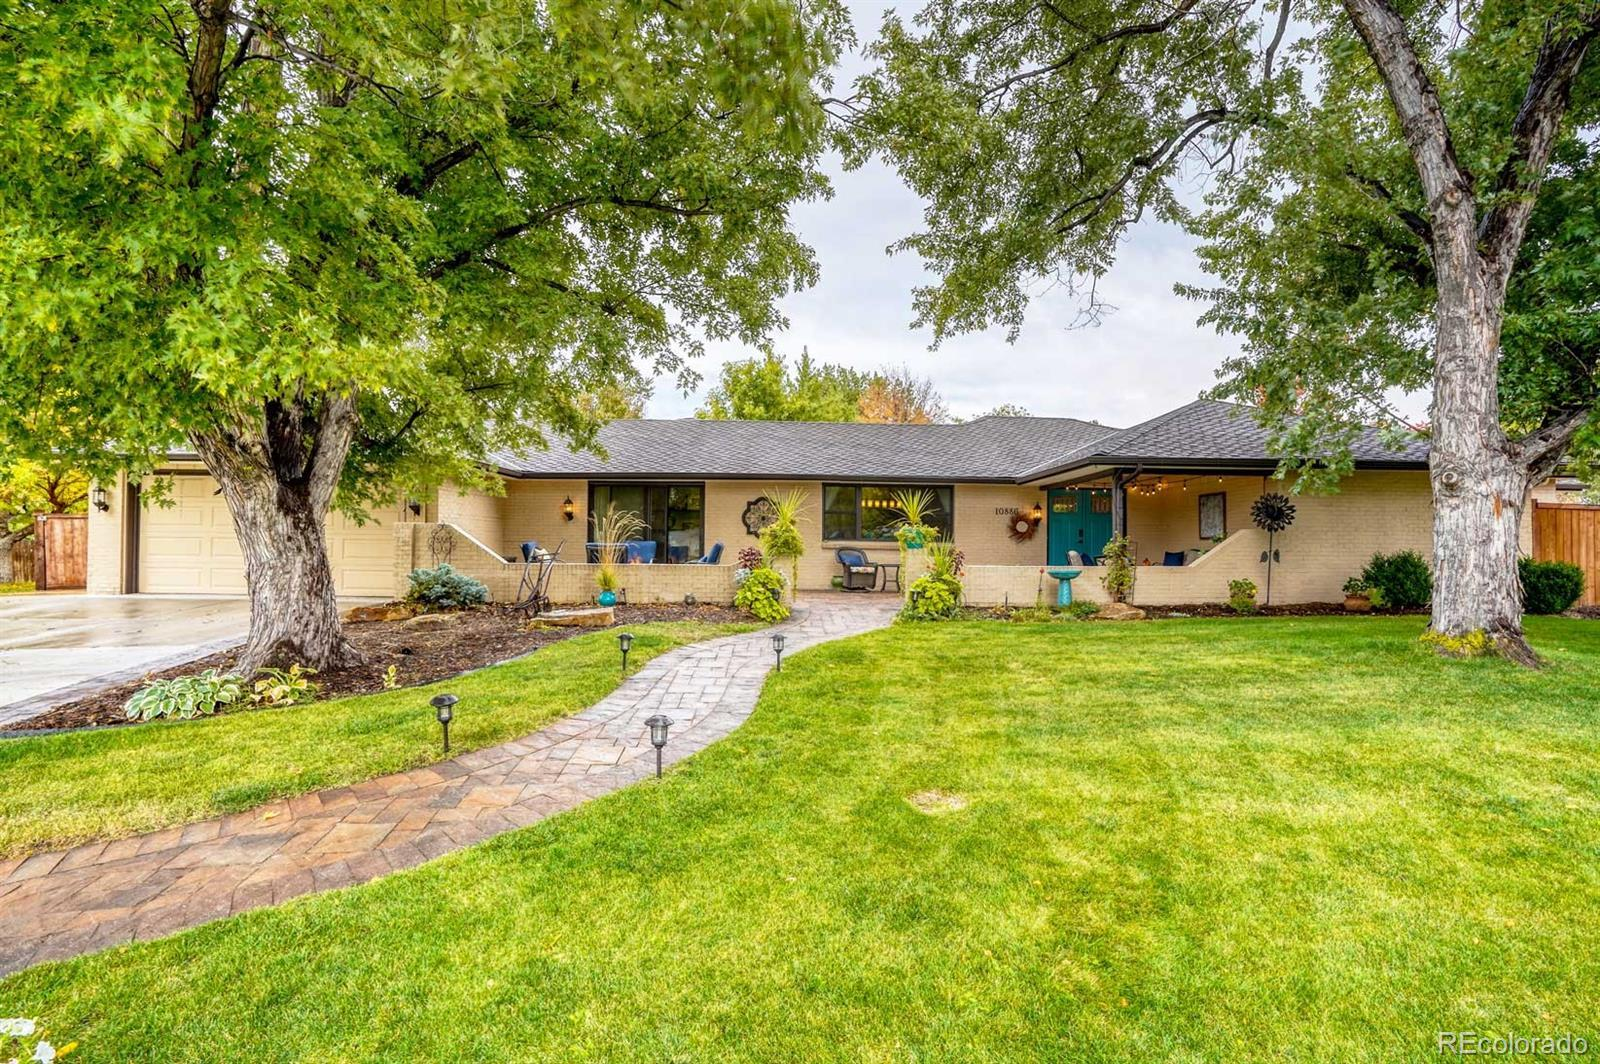 10886 W 31st Place, Lakewood, CO 80215 - #: 7848403